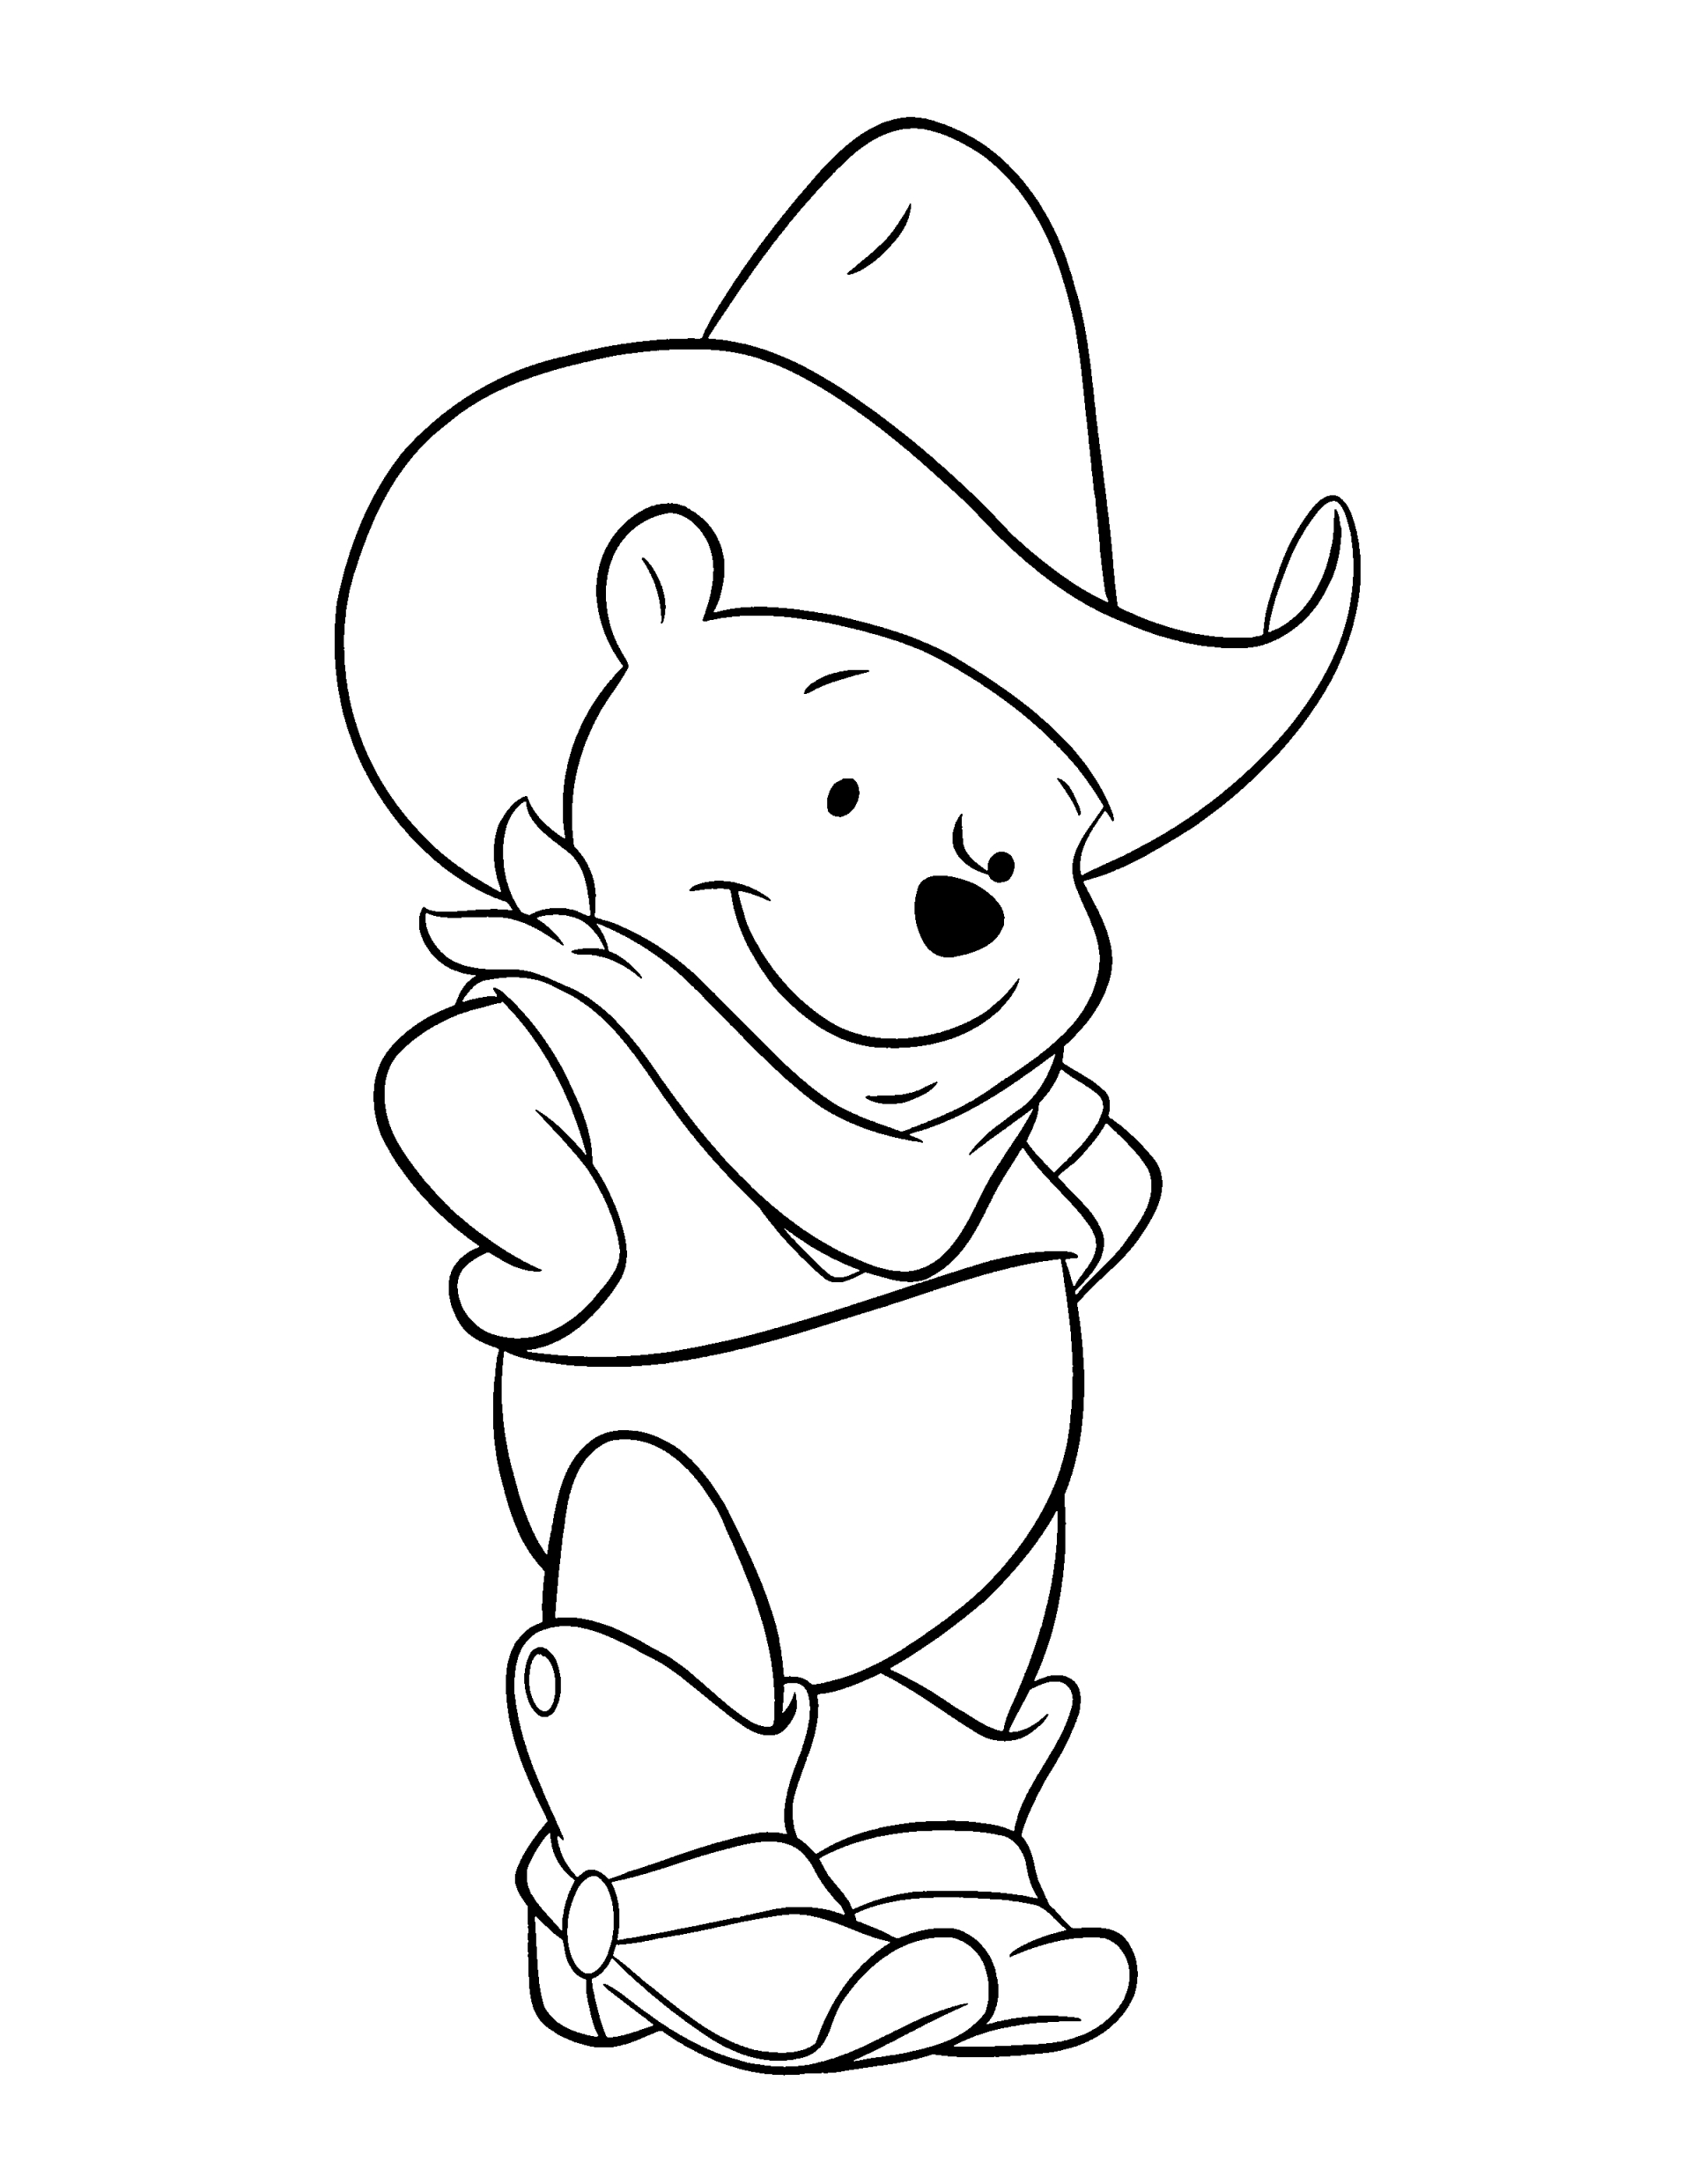 1920x2480 Best Cowboy Pooh Cartoon Coloring Pages Free Printable